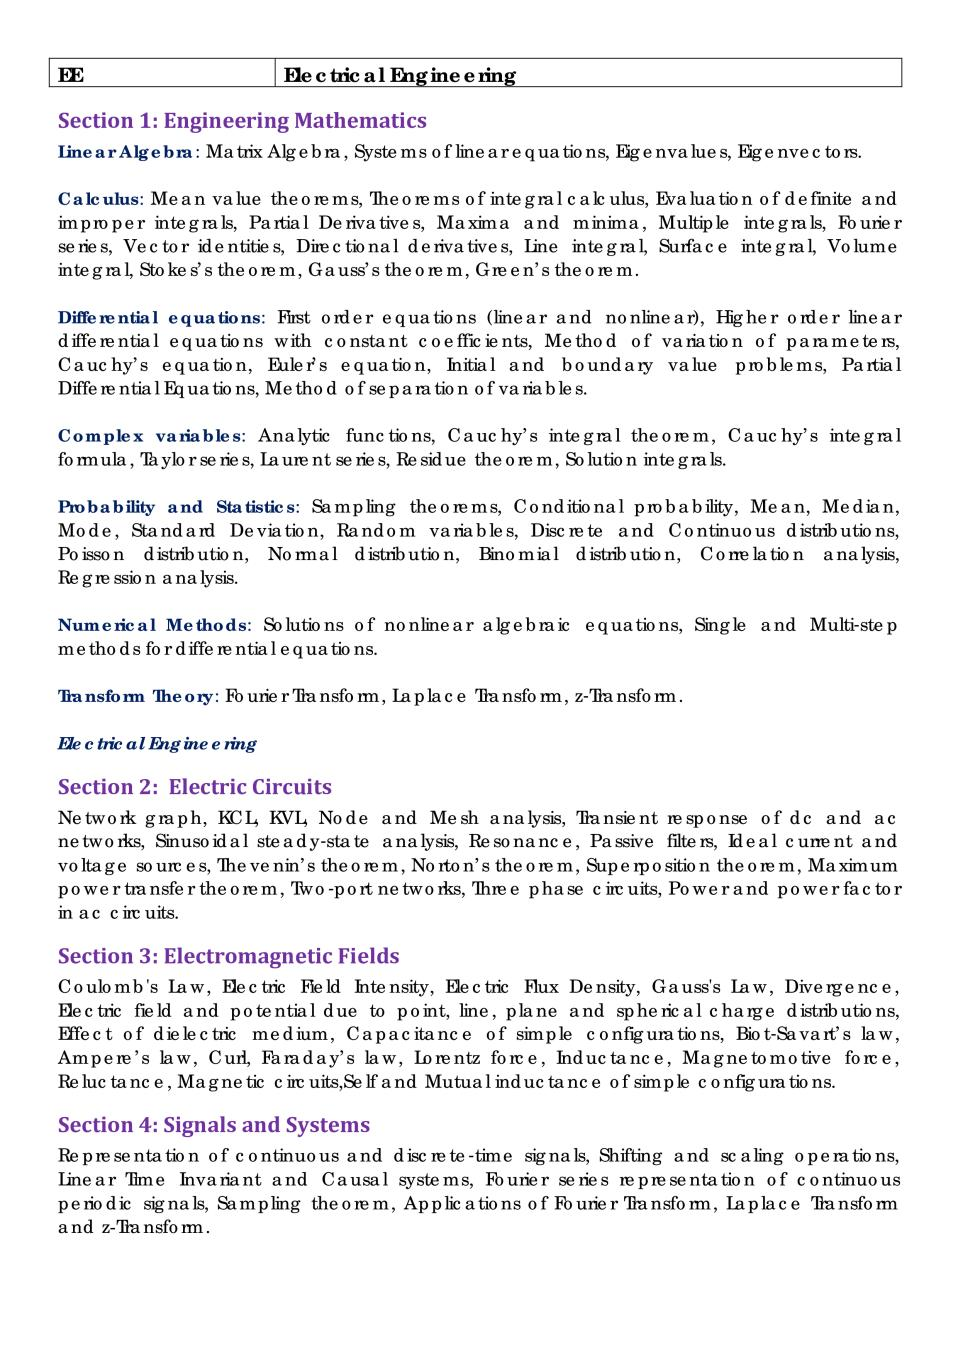 GATE Syllabus for Electrical Engineering (EE) - GATE